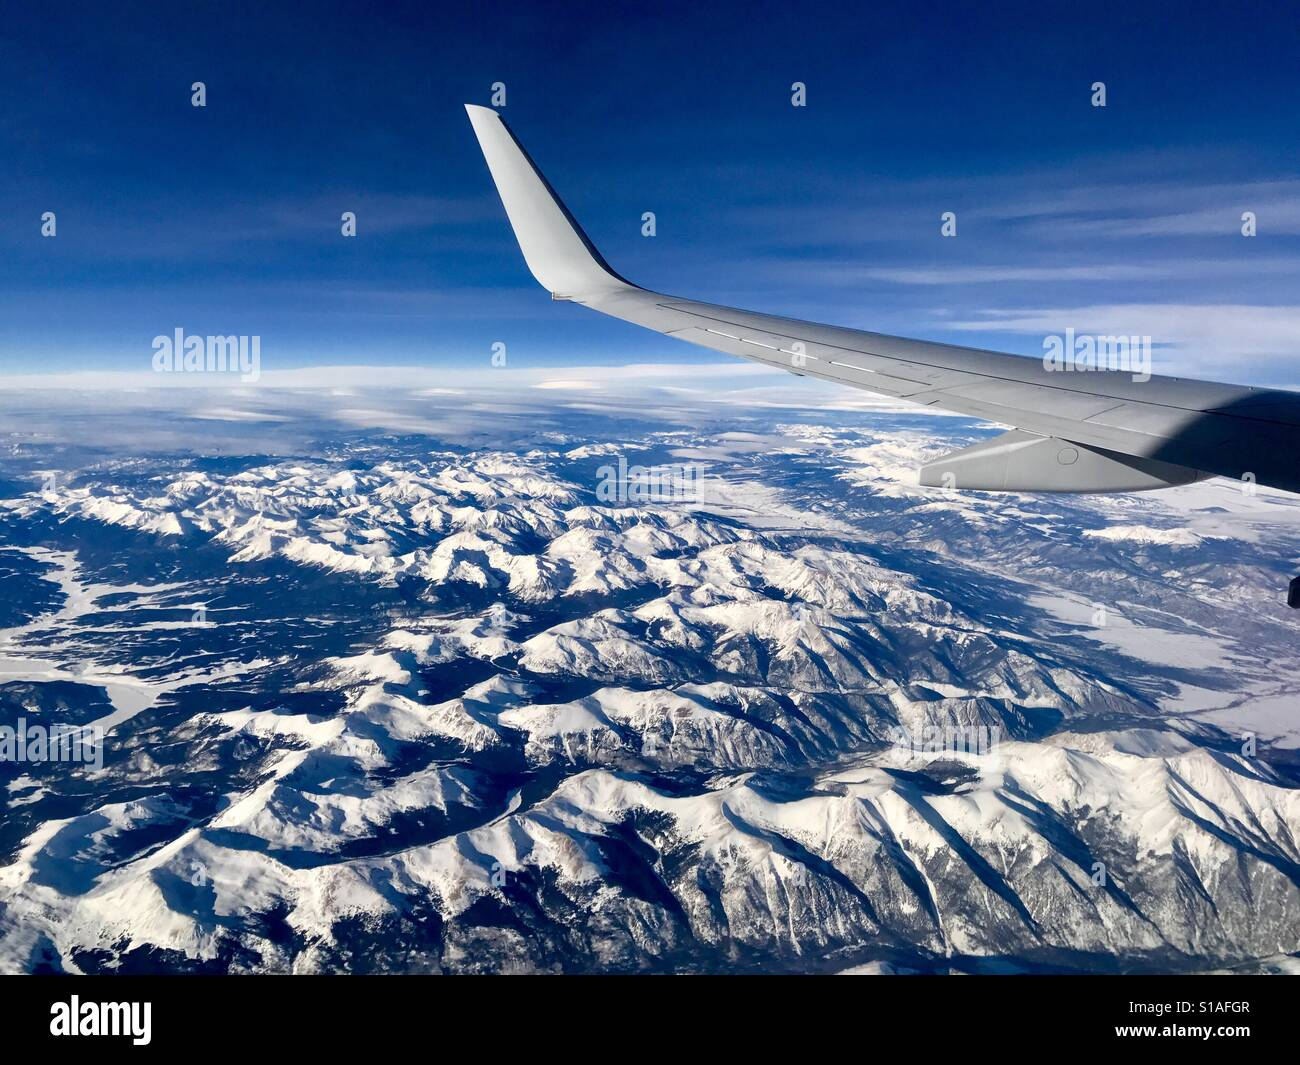 Window seat please - aerial view of Salida Co canyons - Stock Image